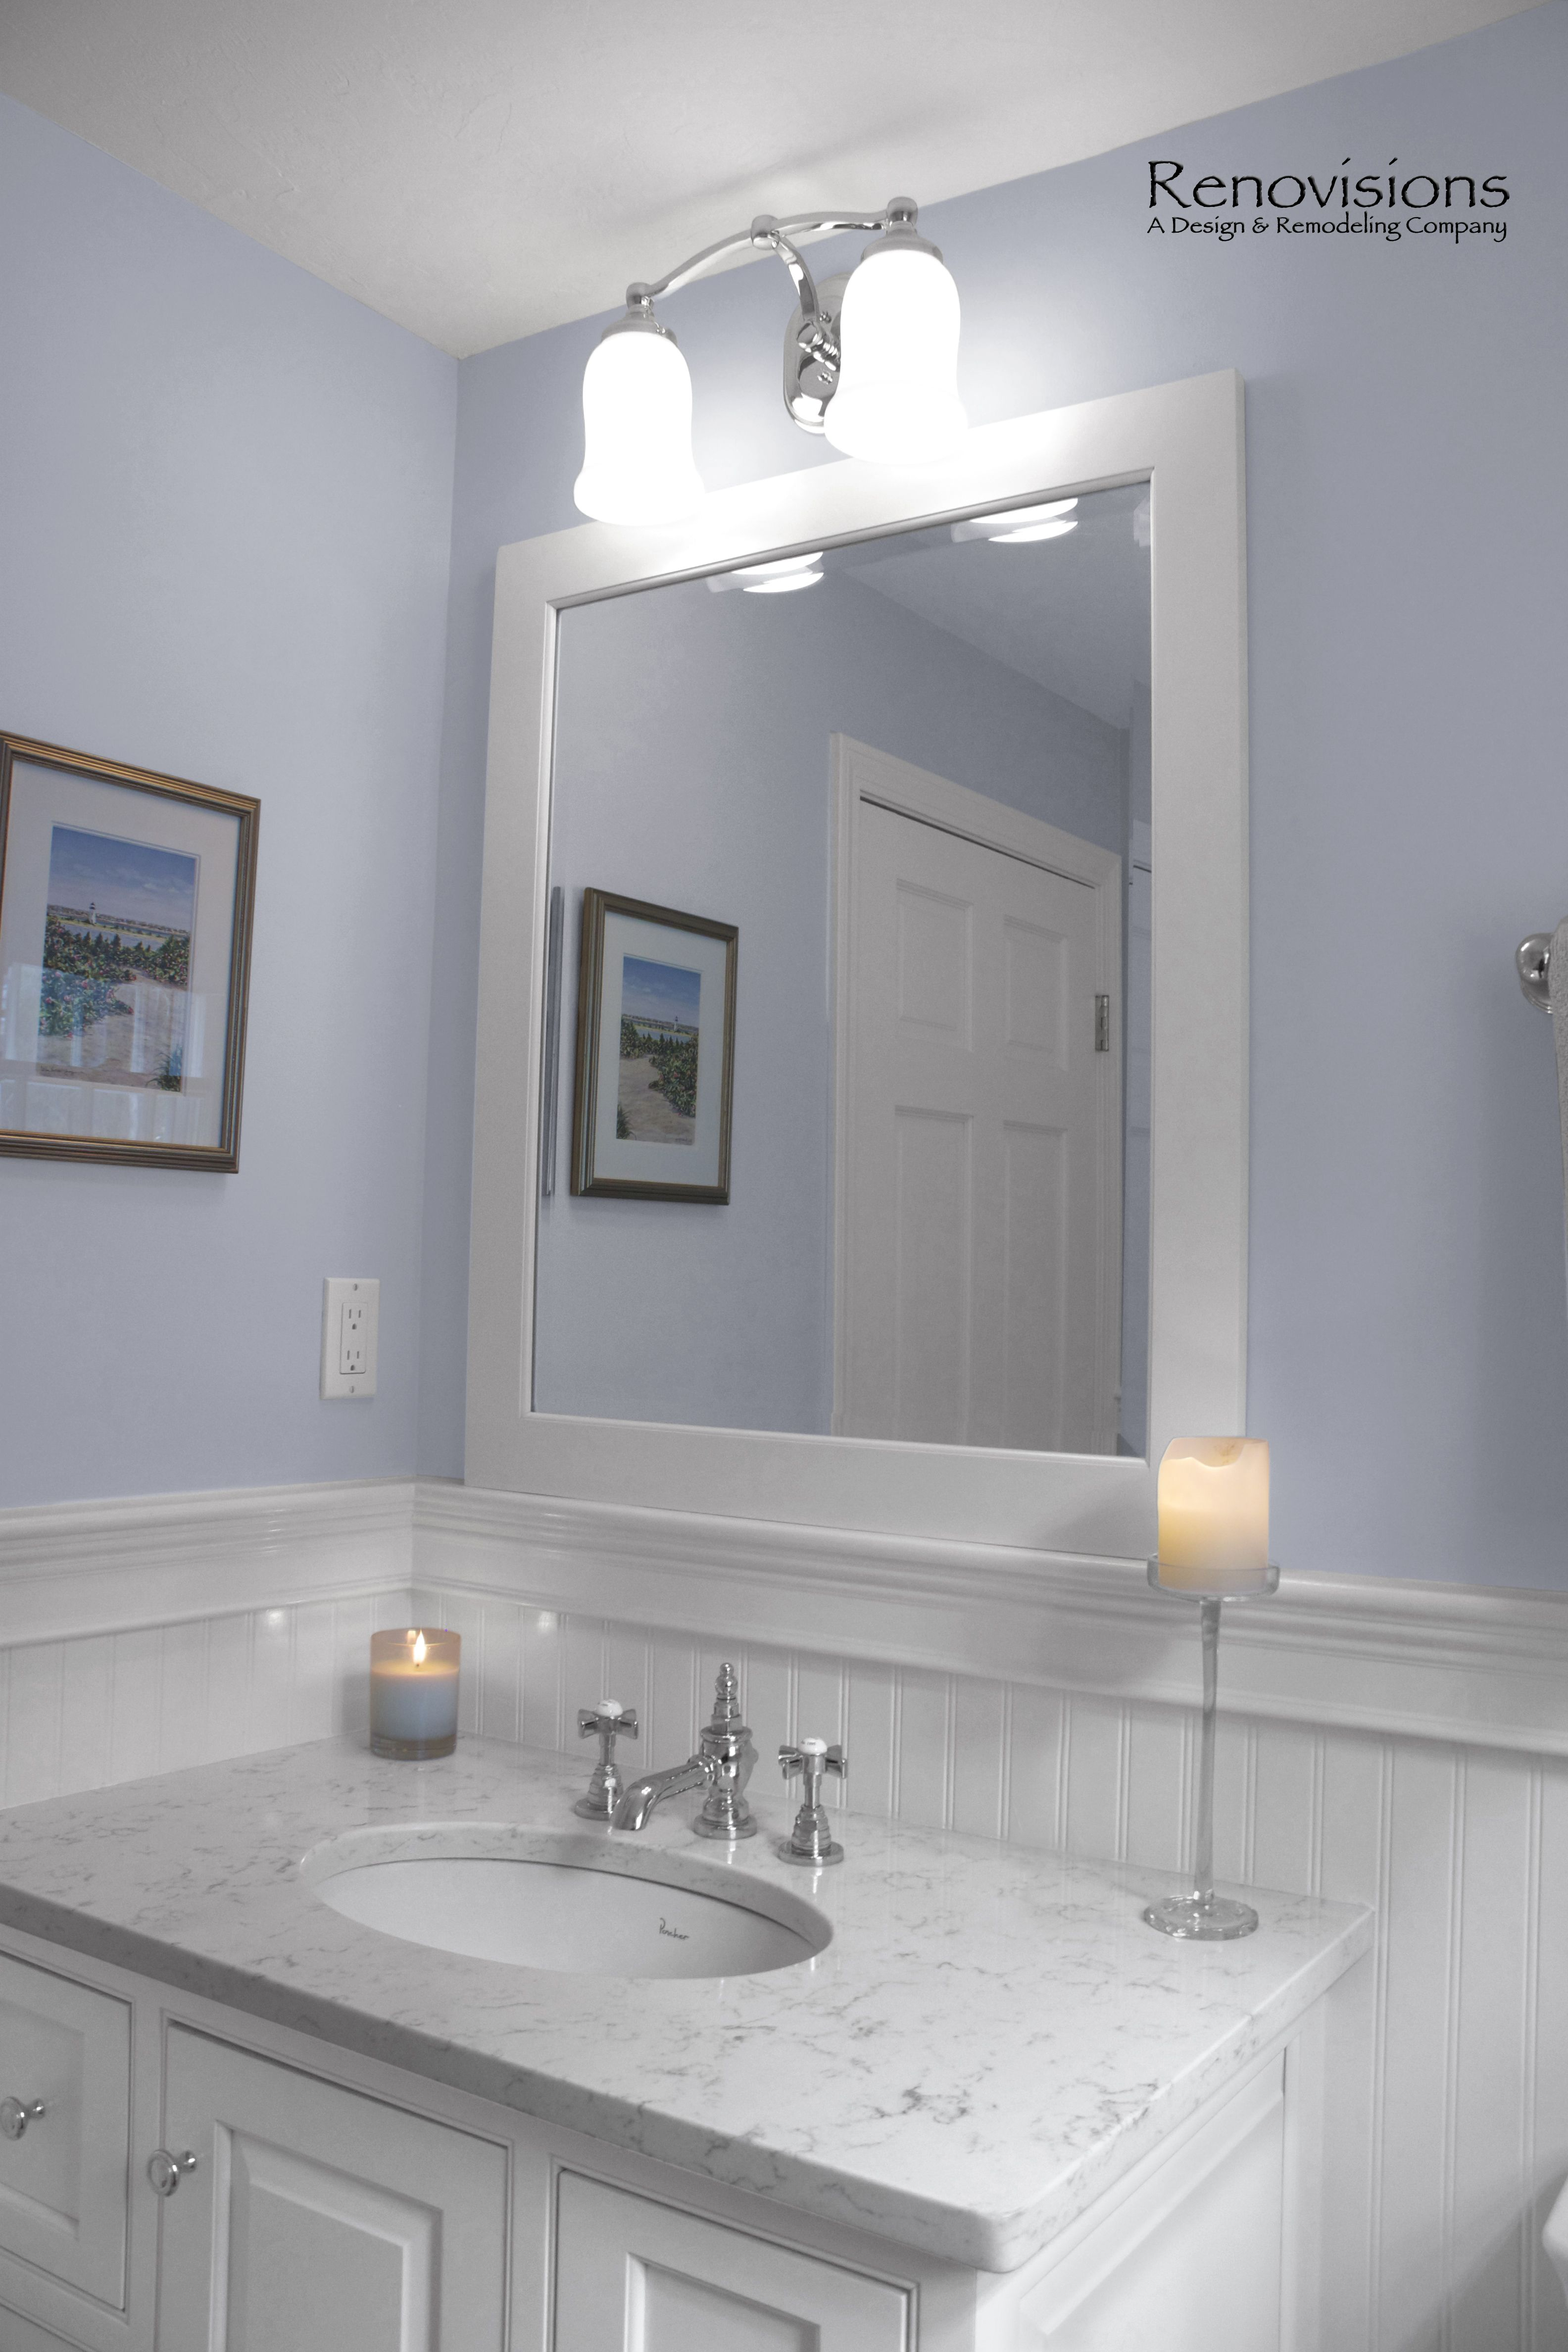 Half Bath Remodel by Renovisions Furniture like inset wood vanity in white painted finish with matching framed mirror Carrera look quartz countertop and